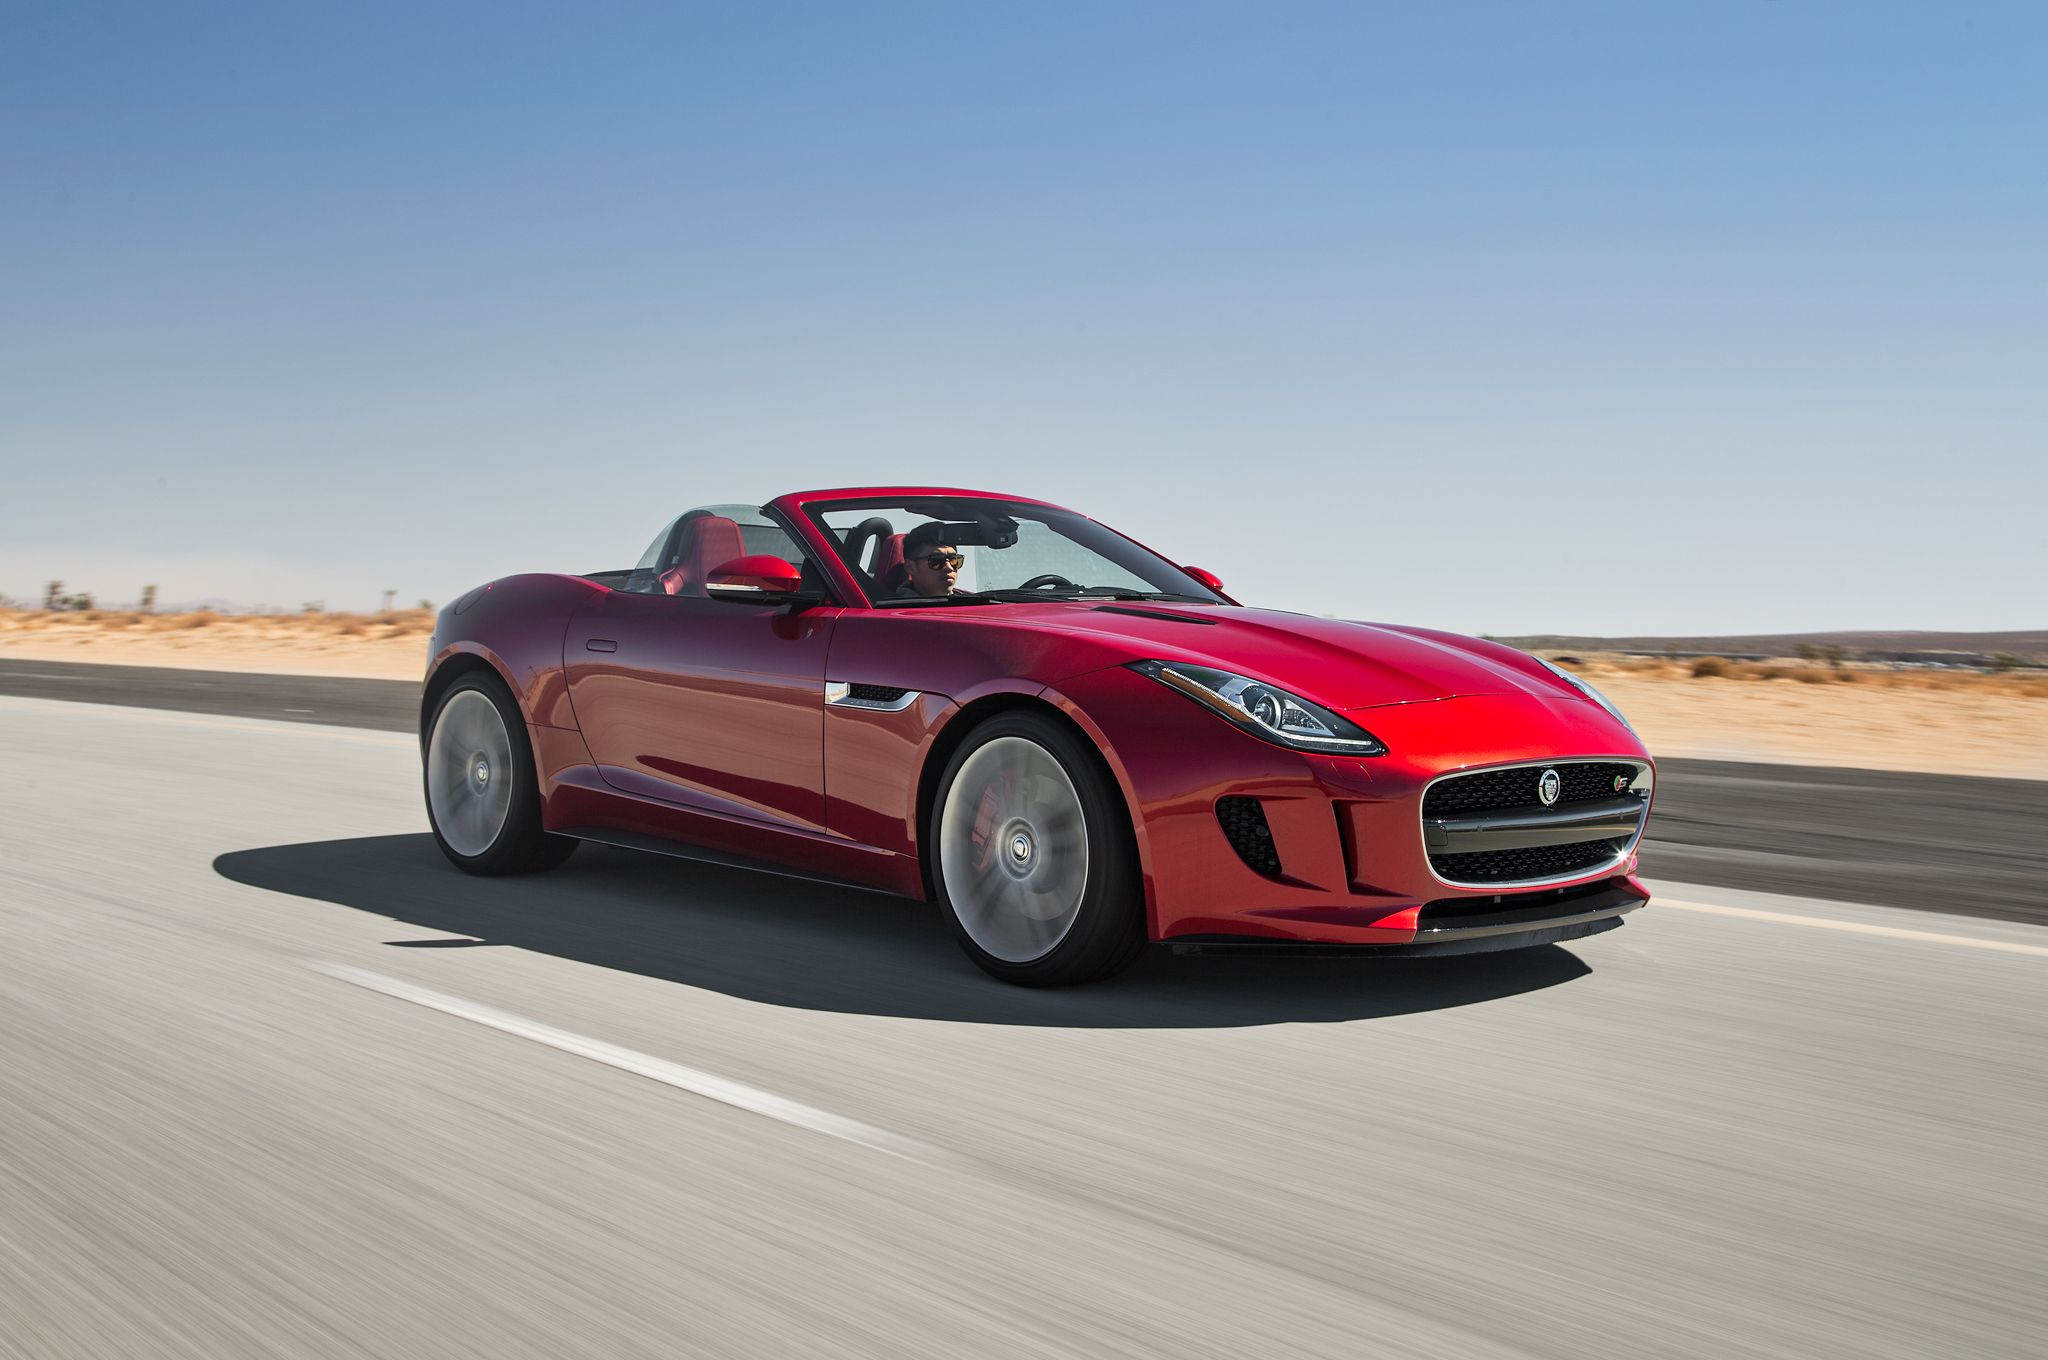 Jaguar FType V S The Meanest And Loudest Dream Cars And Cars - 2015 jaguar f type v8 s